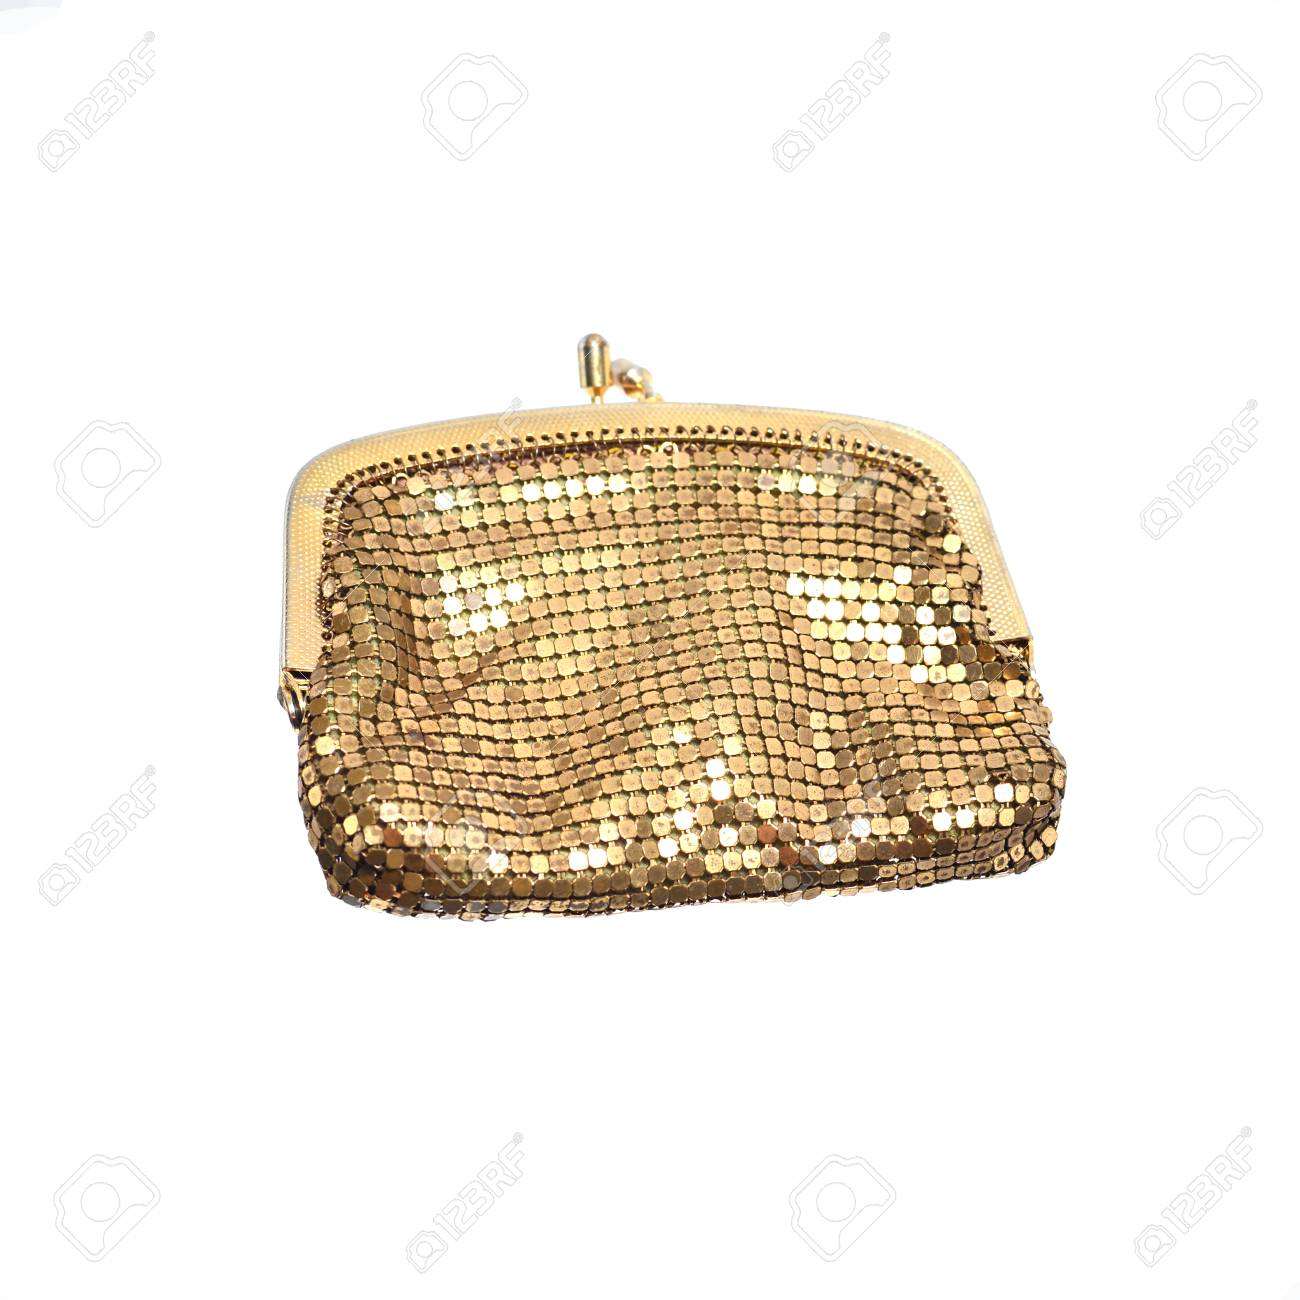 Golden Coin Purse Isolated On White Stock